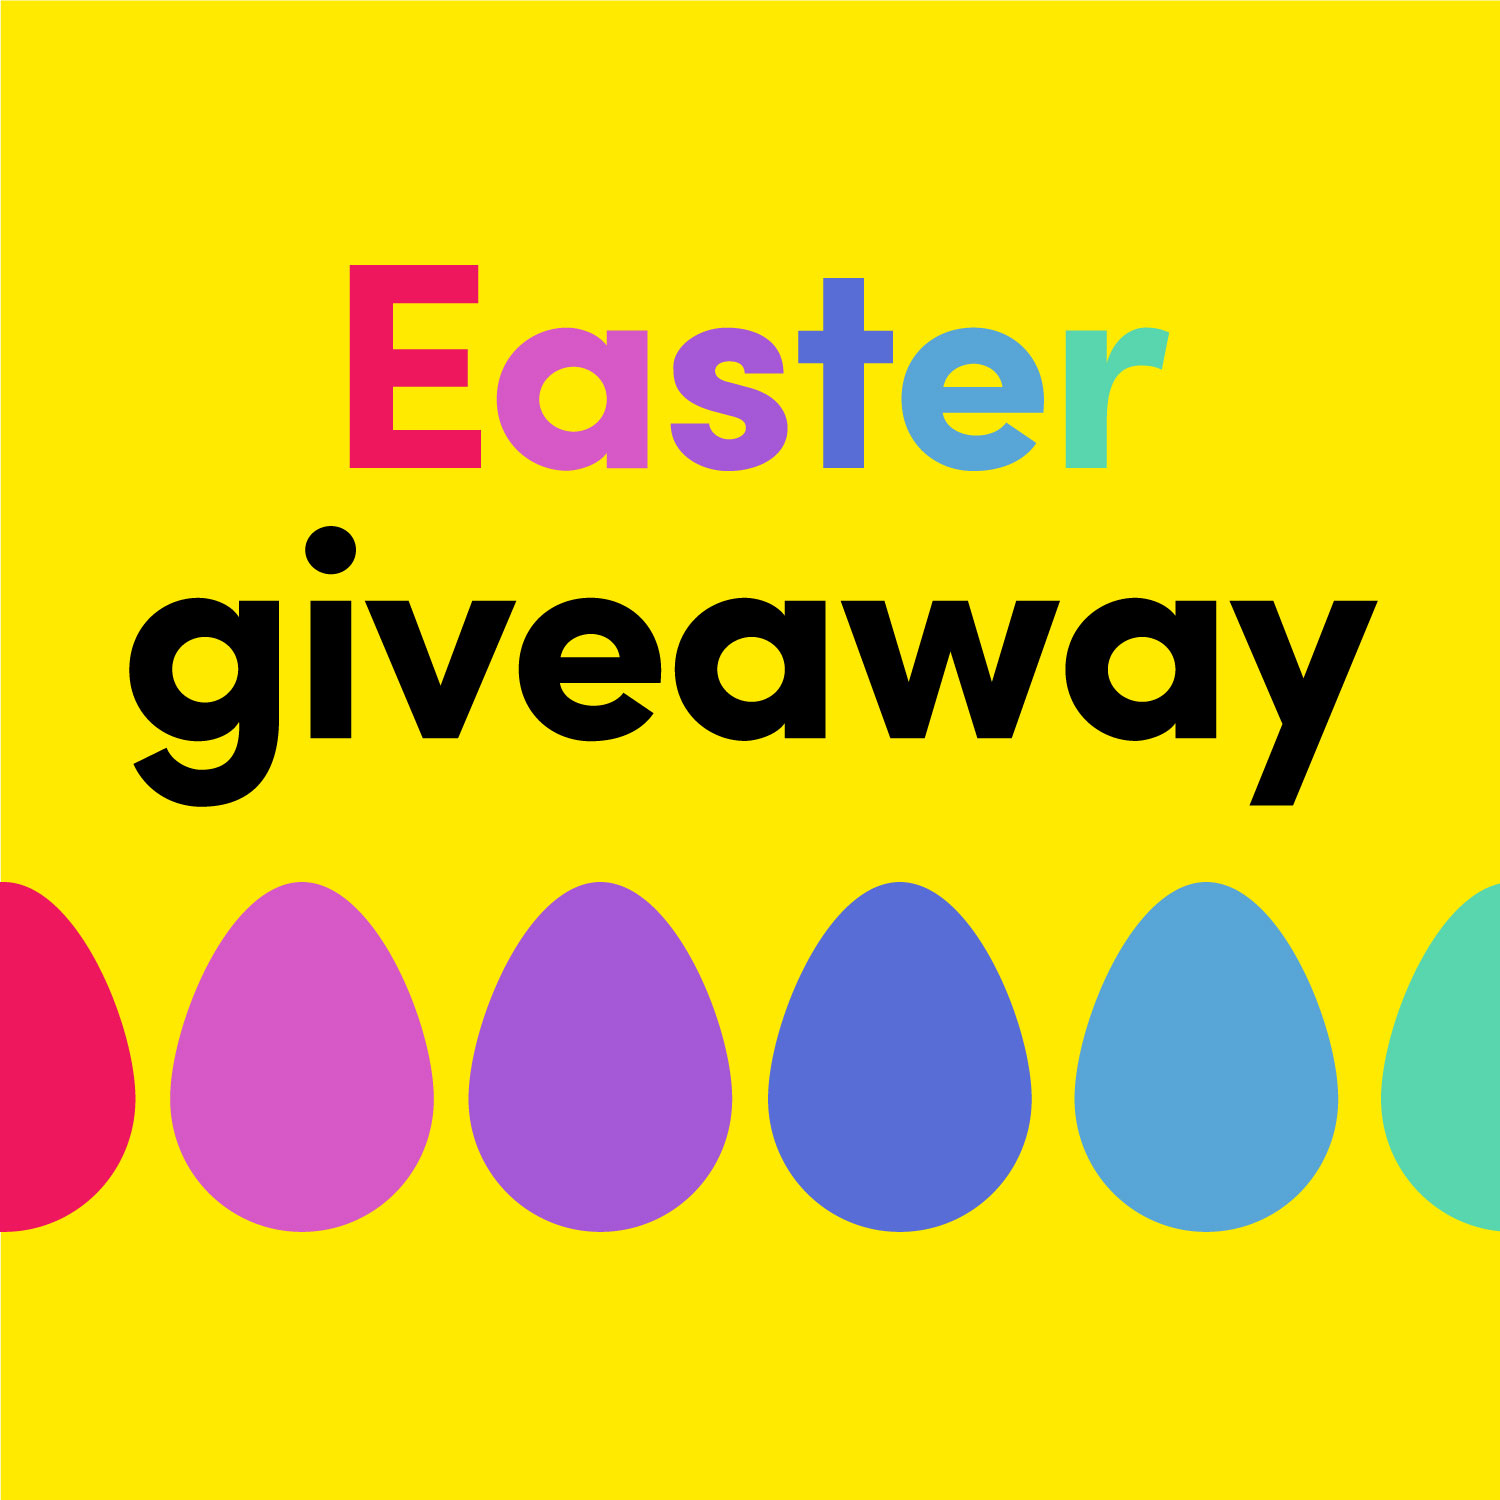 Easter giveaway graphic